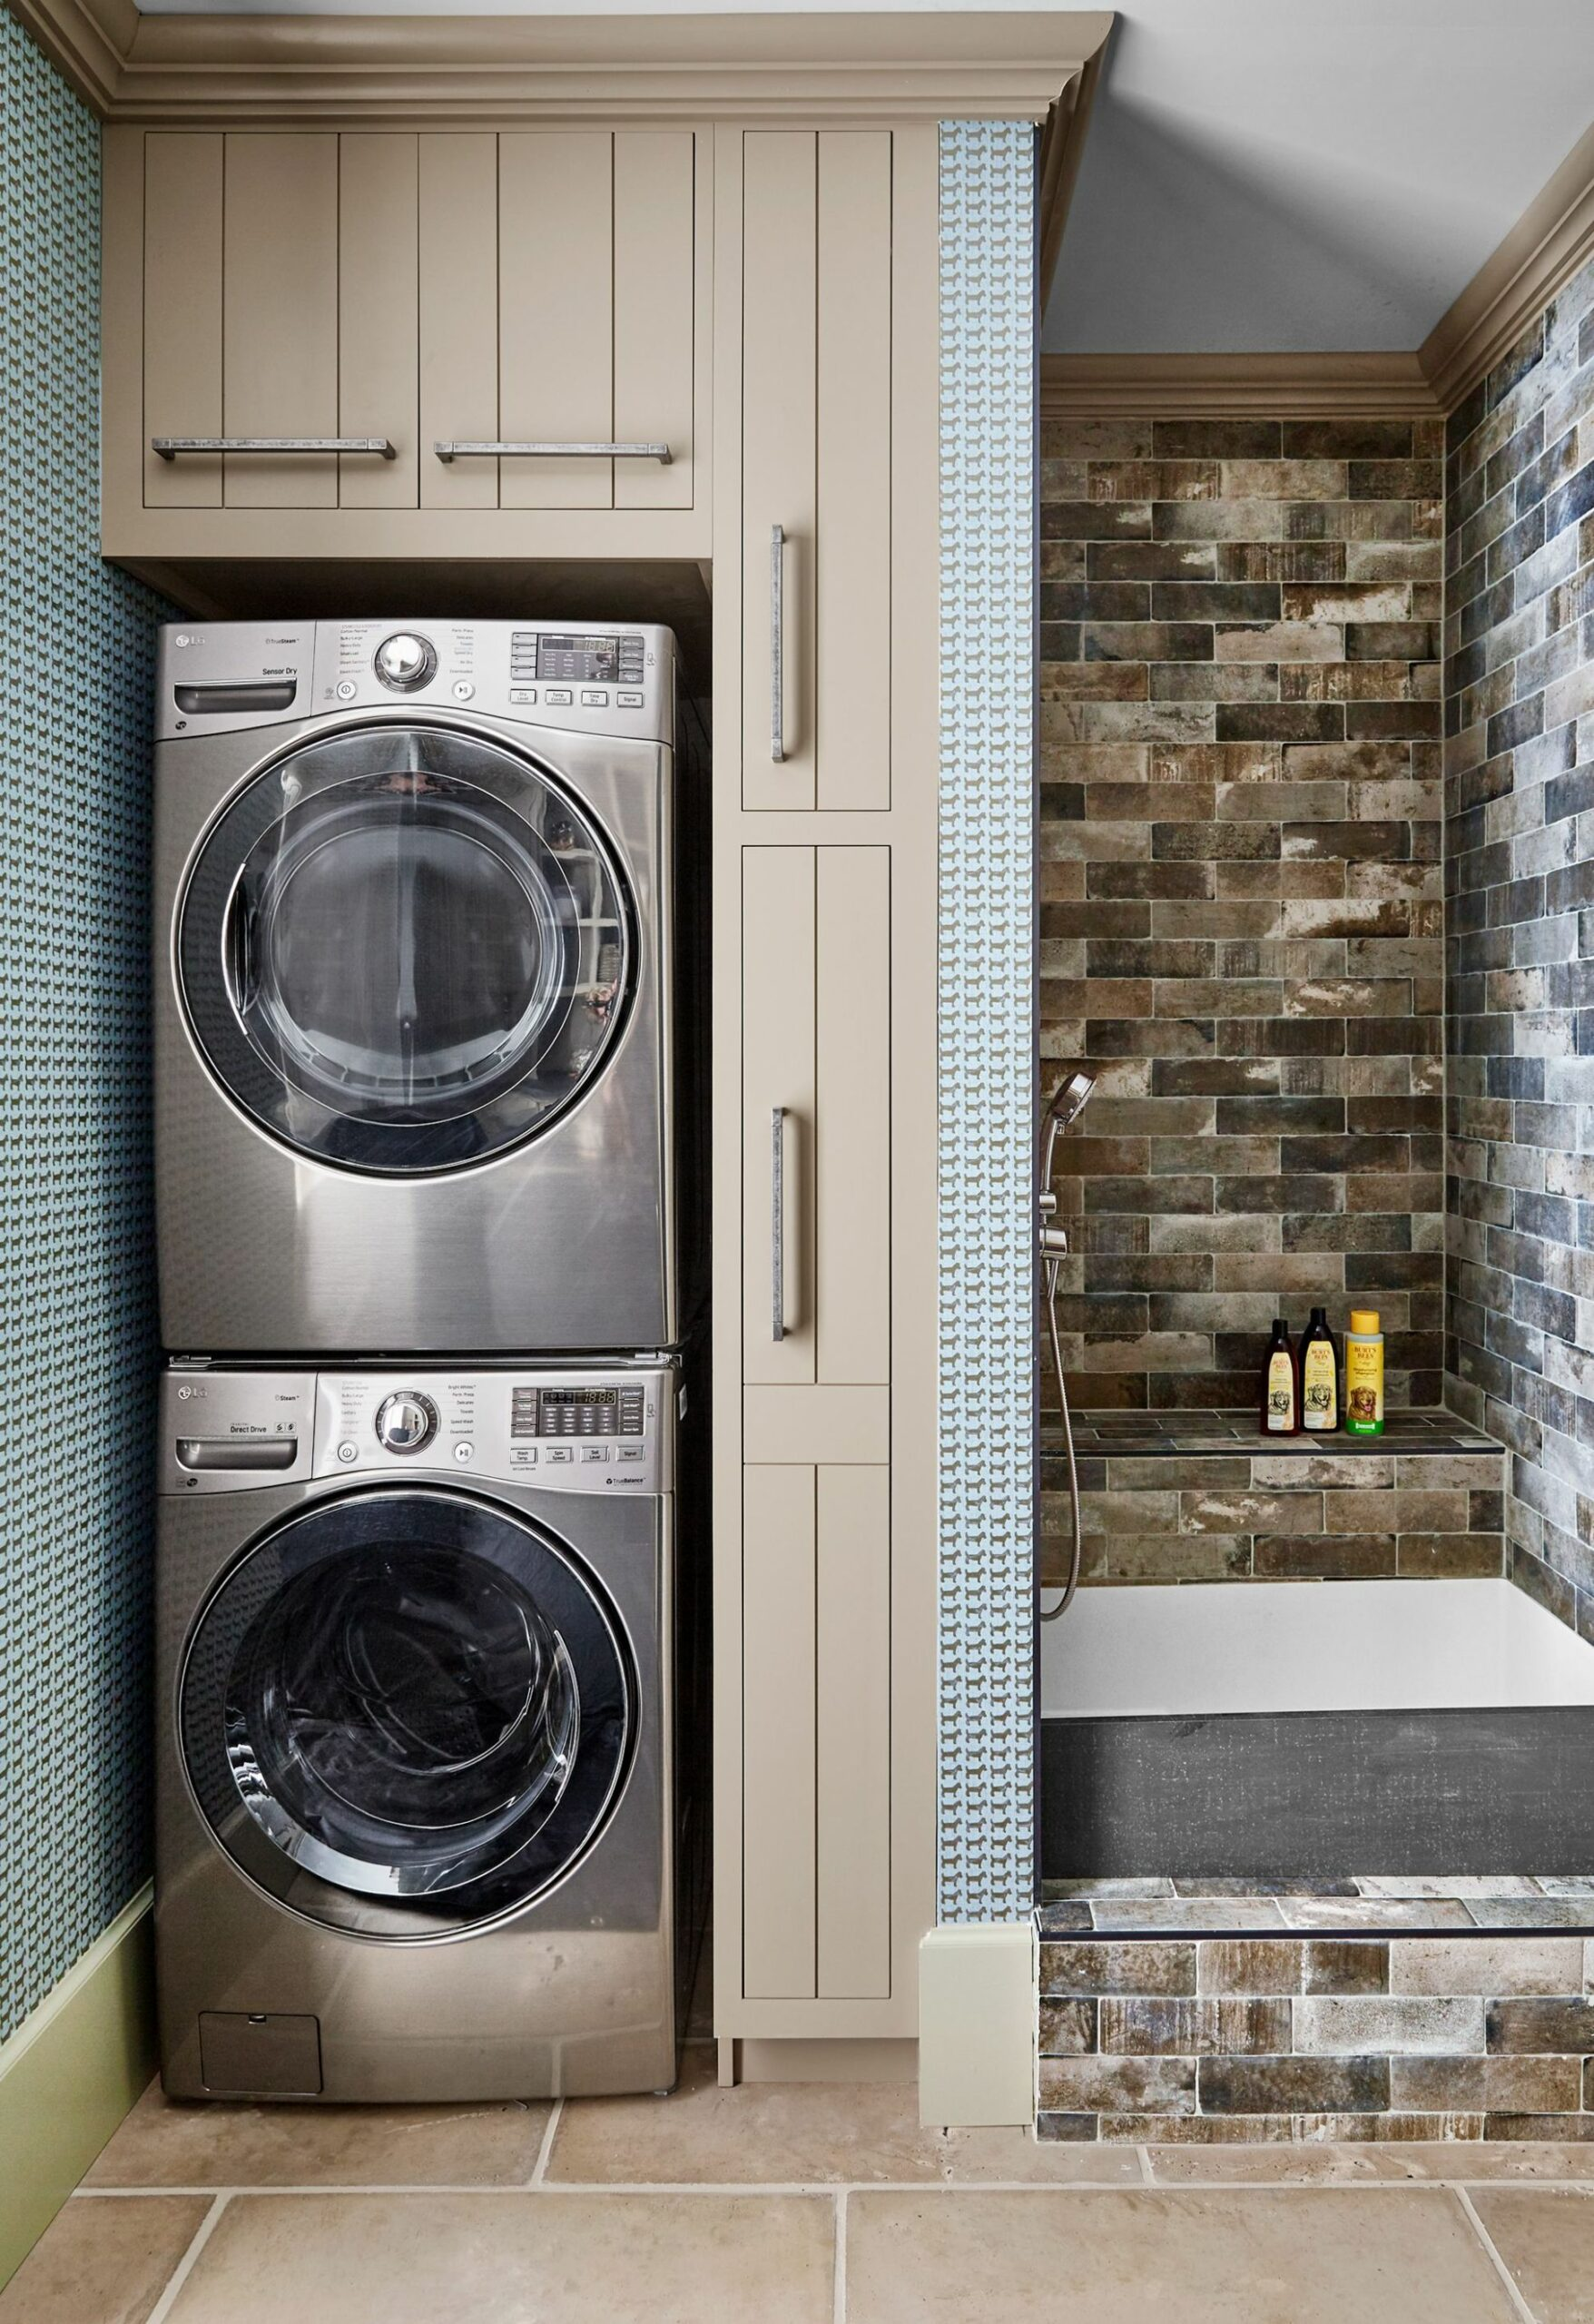 11 Small Laundry Room Ideas - Small Laundry Room Storage Tips - laundry room bar ideas